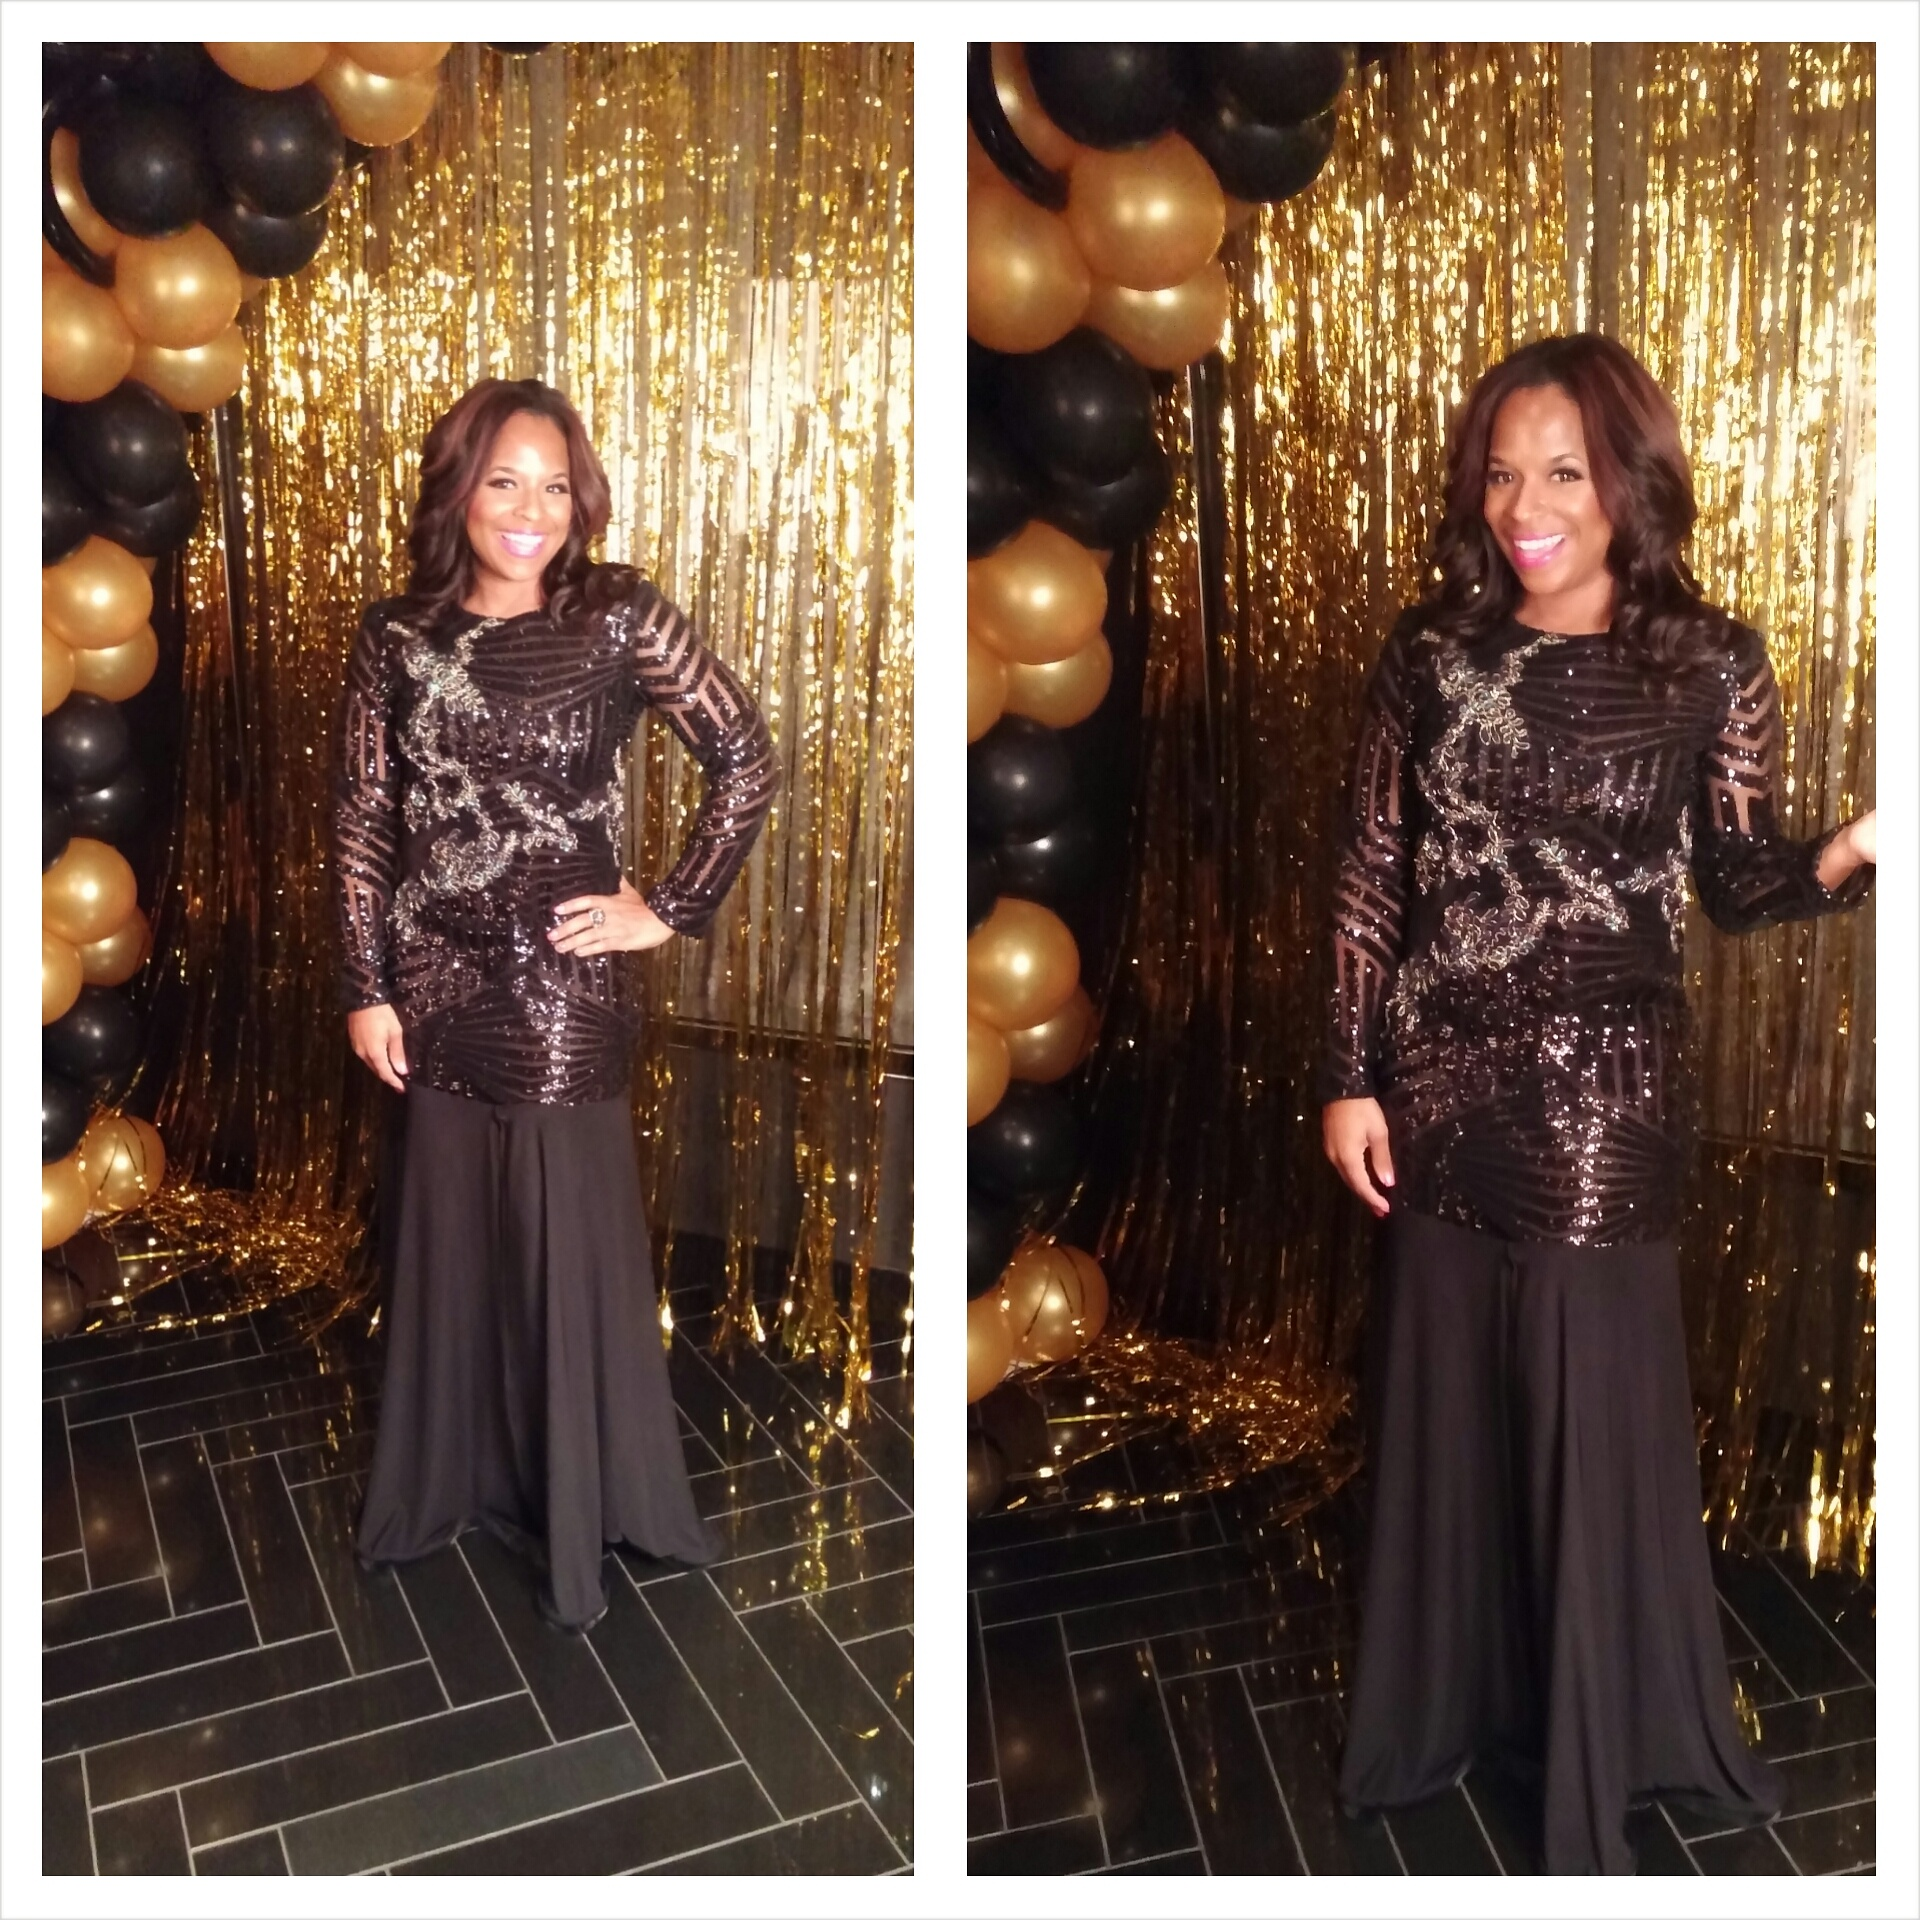 Dress for Hollywood Prom 2015. Dress by www.3degreesdb.com